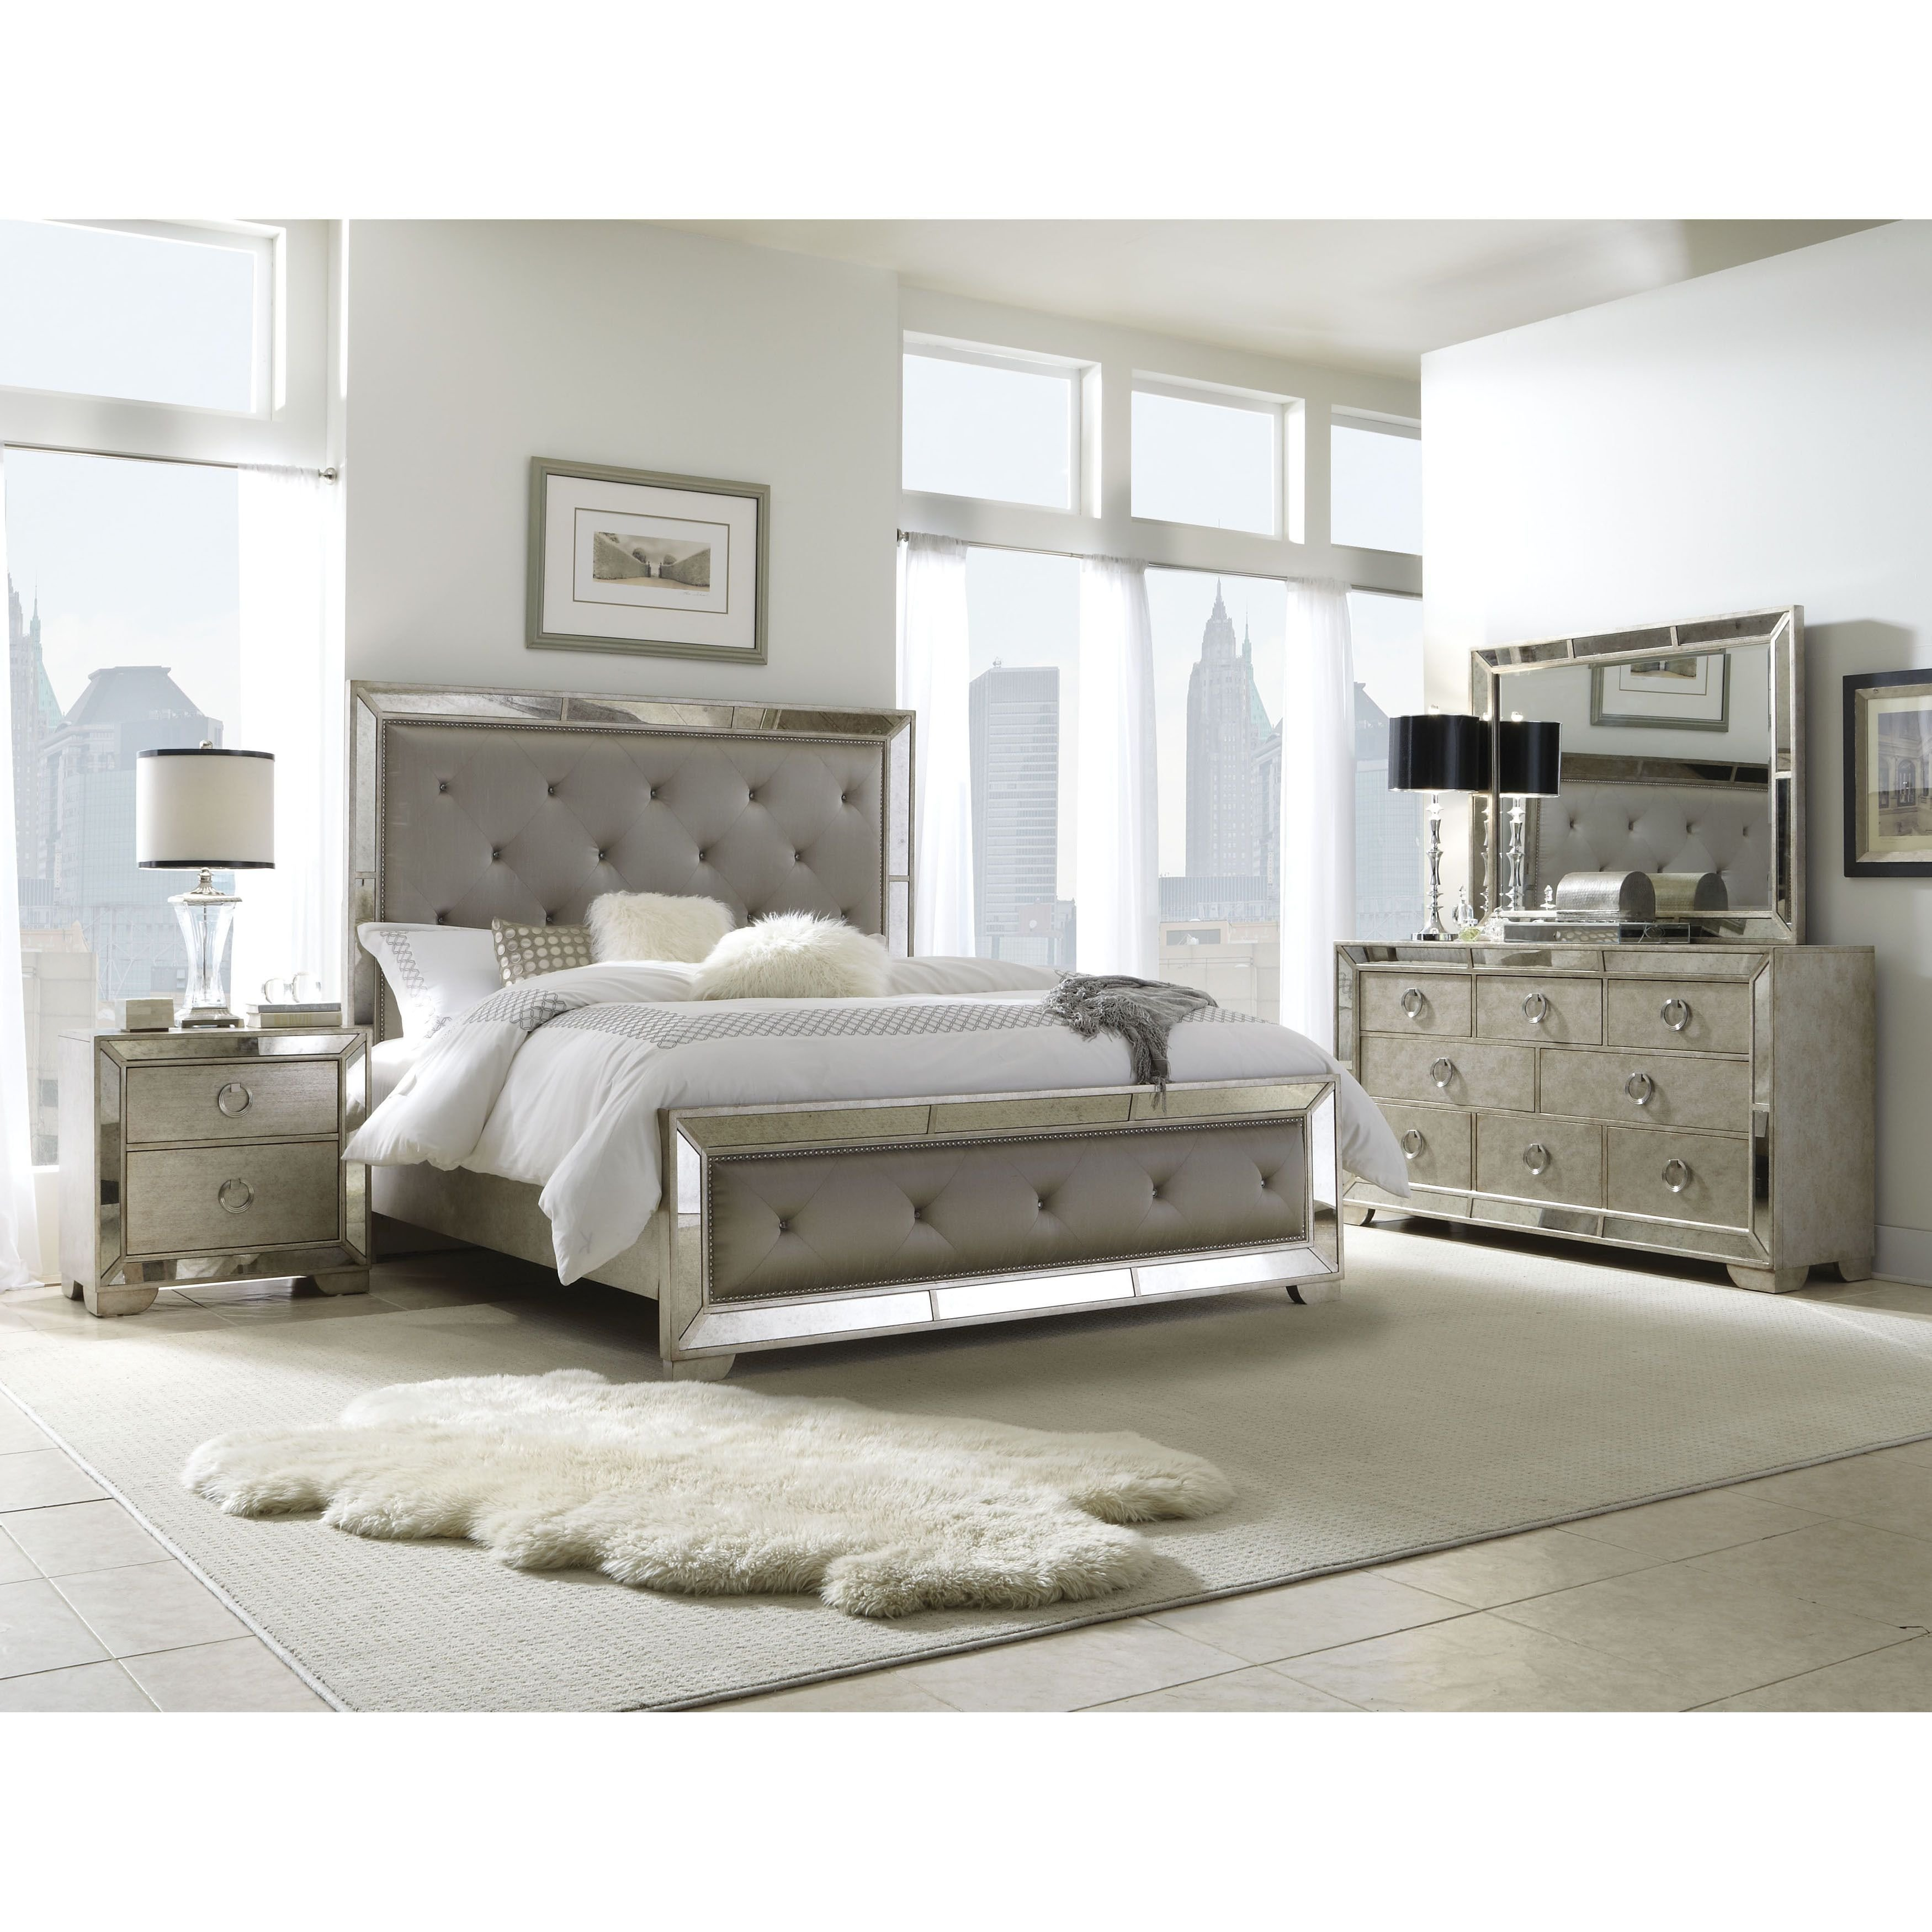 Best Celine 5 Piece Mirrored And Upholstered Tufted King Size With Pictures